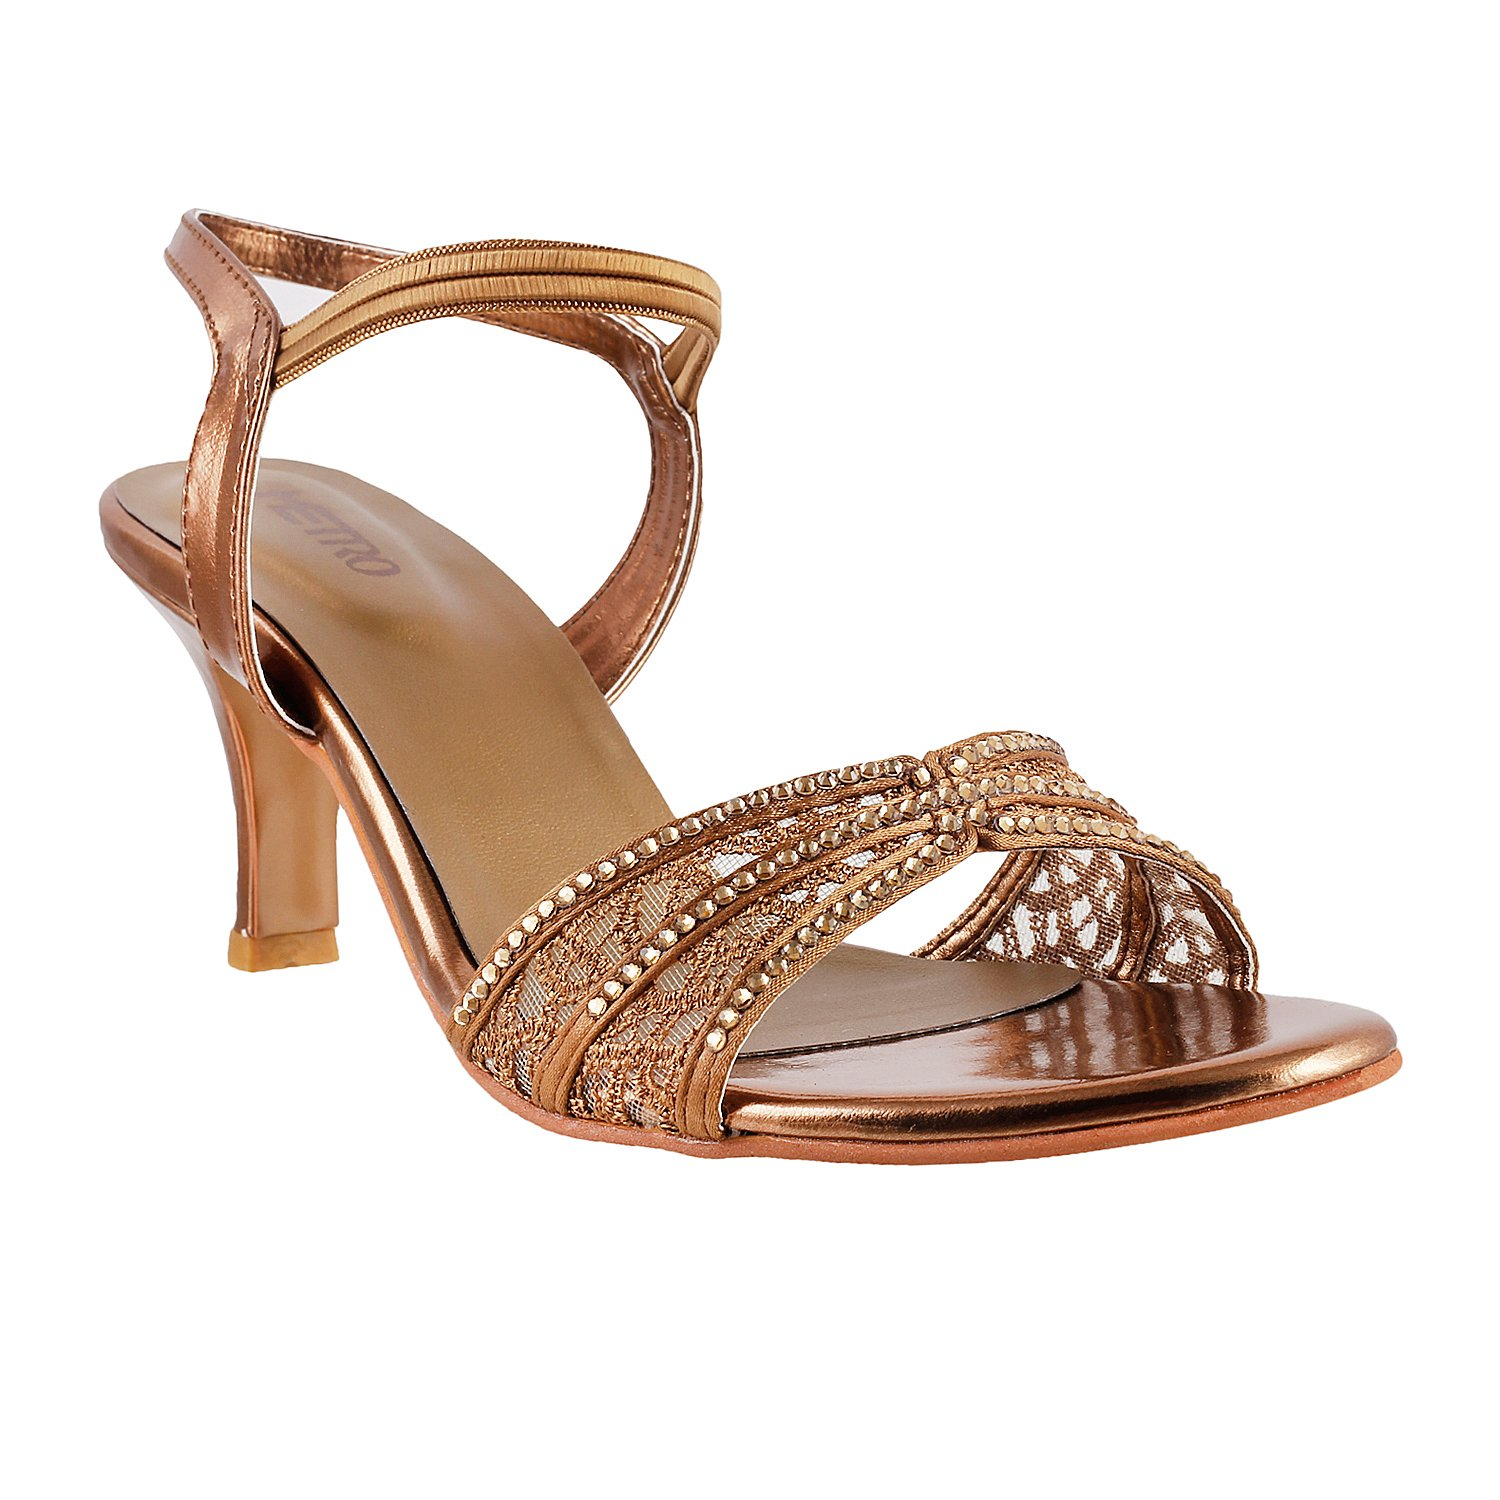 METRO Women's Fashion Shoes - Sandals